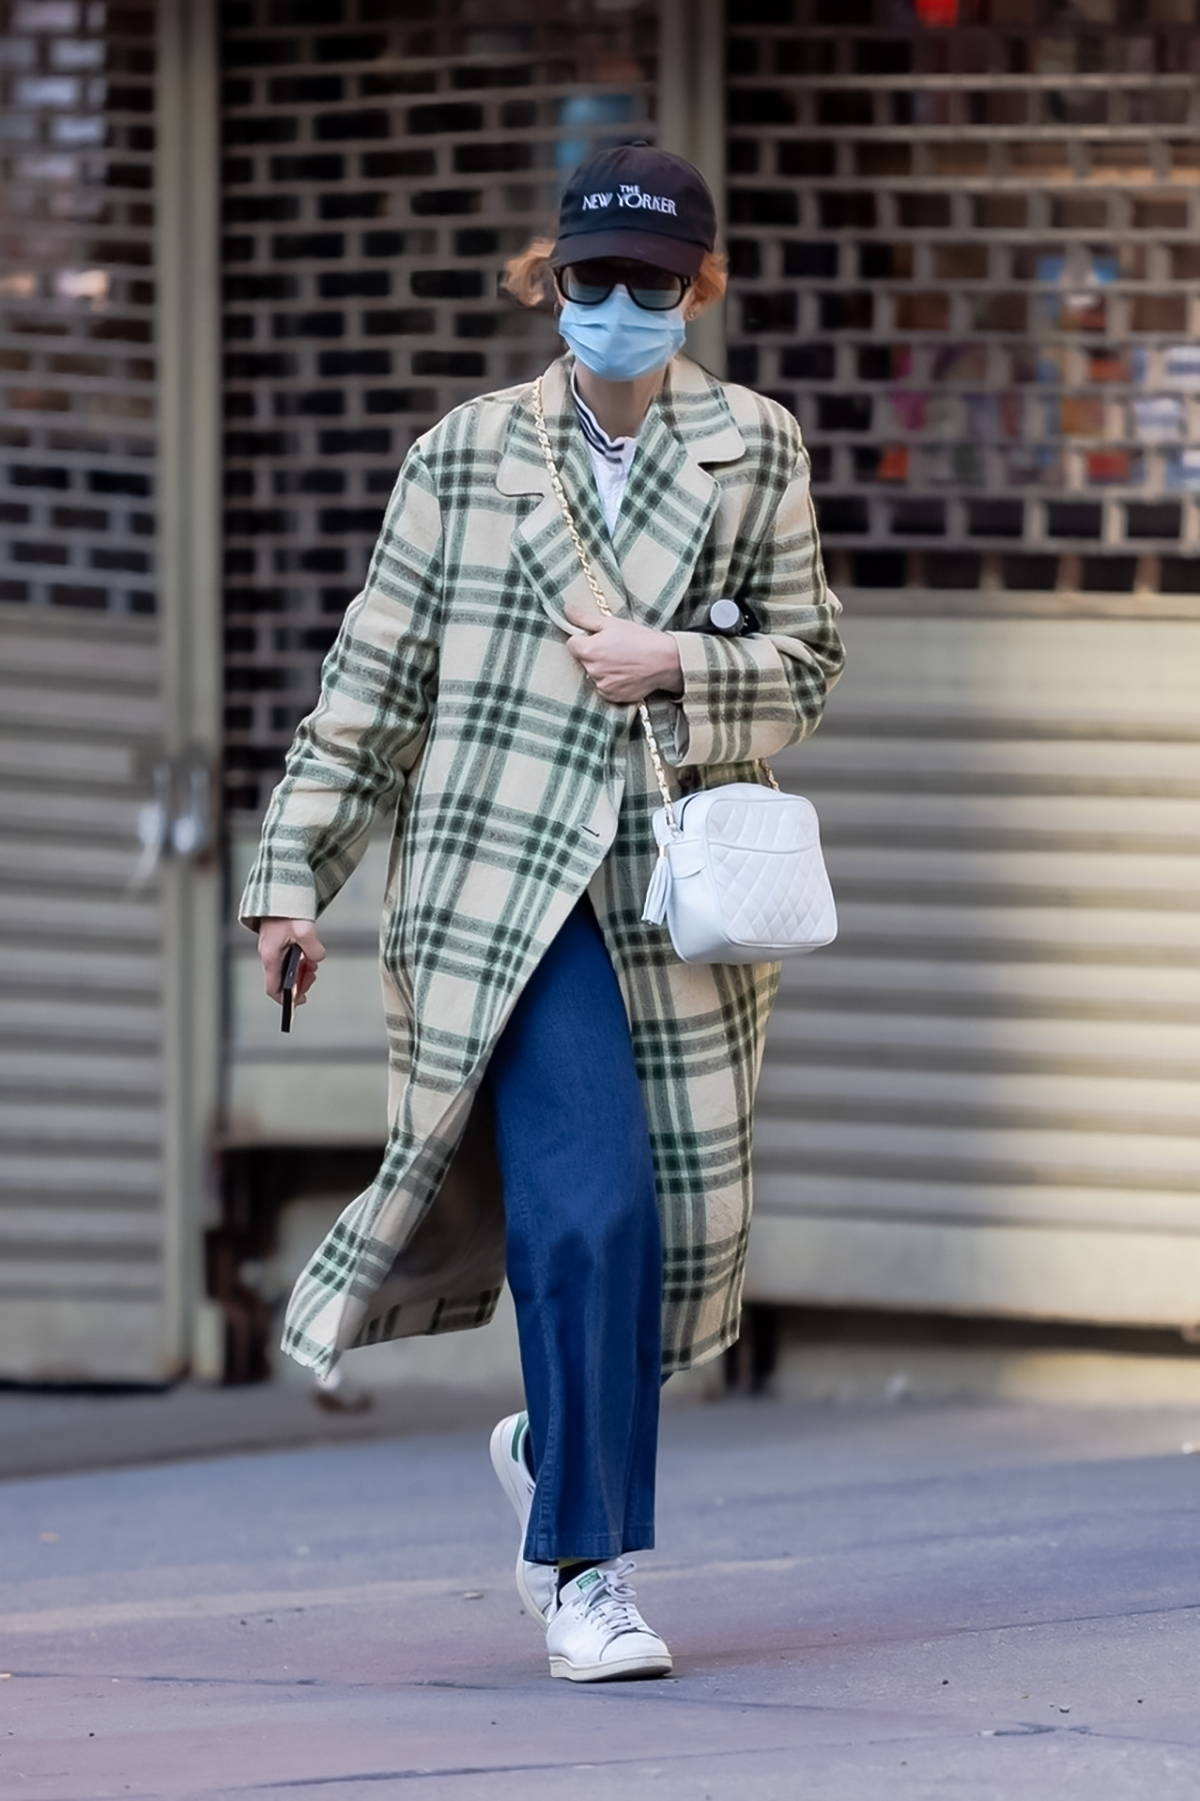 Jennifer Lawrence bundles up in a plaid overcoat as she steps out in New York City